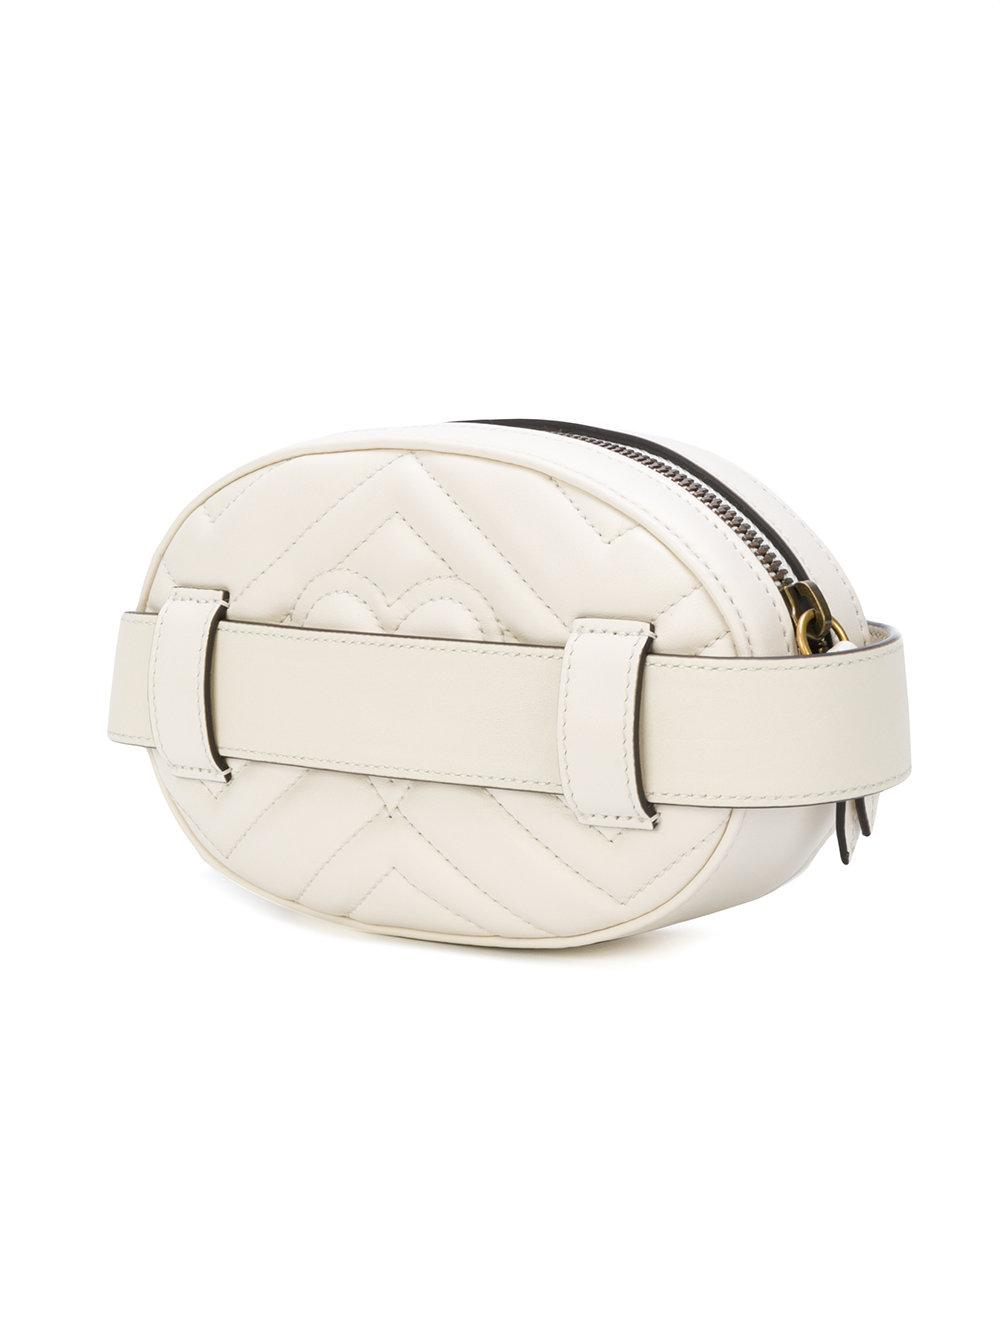 d0b31842d67 Lyst - Gucci Gg Marmont Belt Bag in White